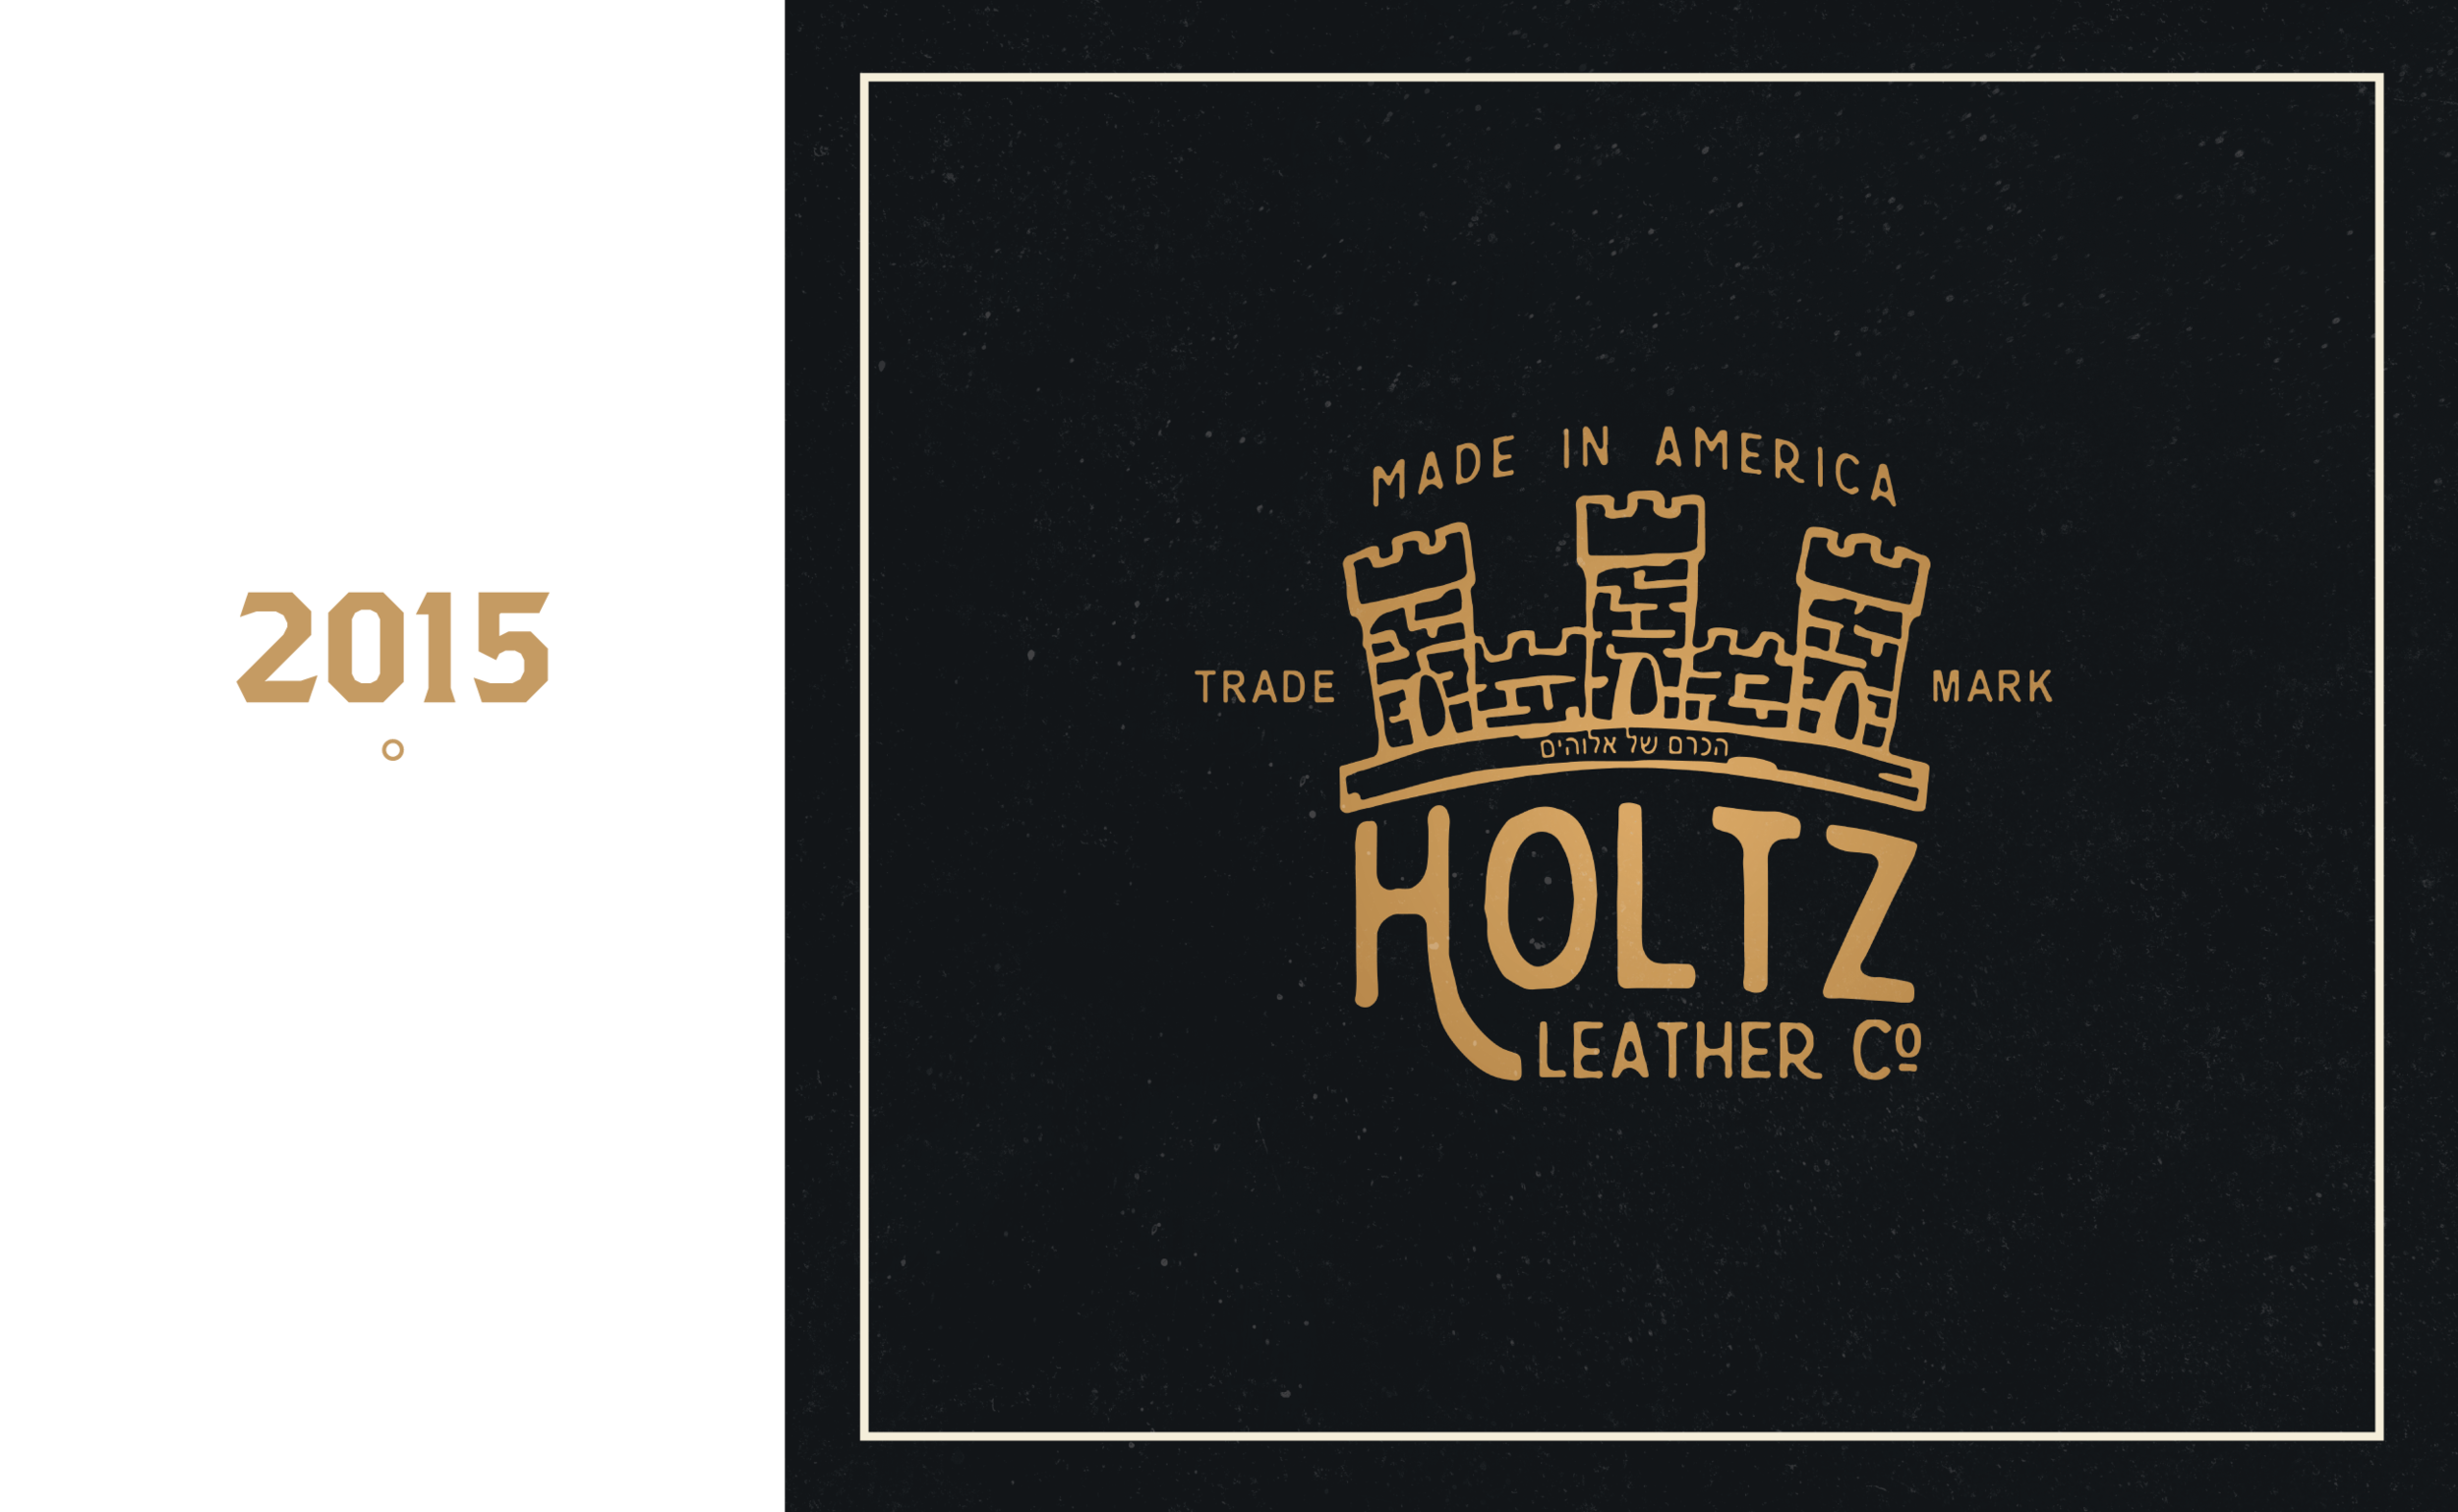 HoltzBranding-AboutUs-HoltzLeather-Transparent-01.png